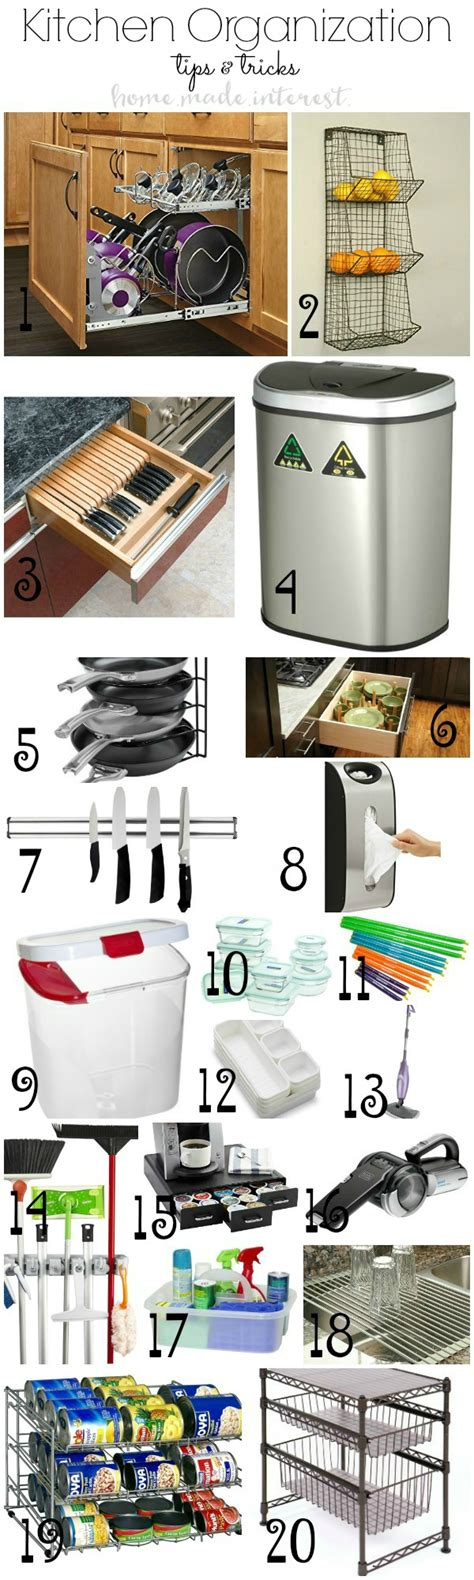 kitchen organizing tips easy tips to organize your kitchen home made interest 2386